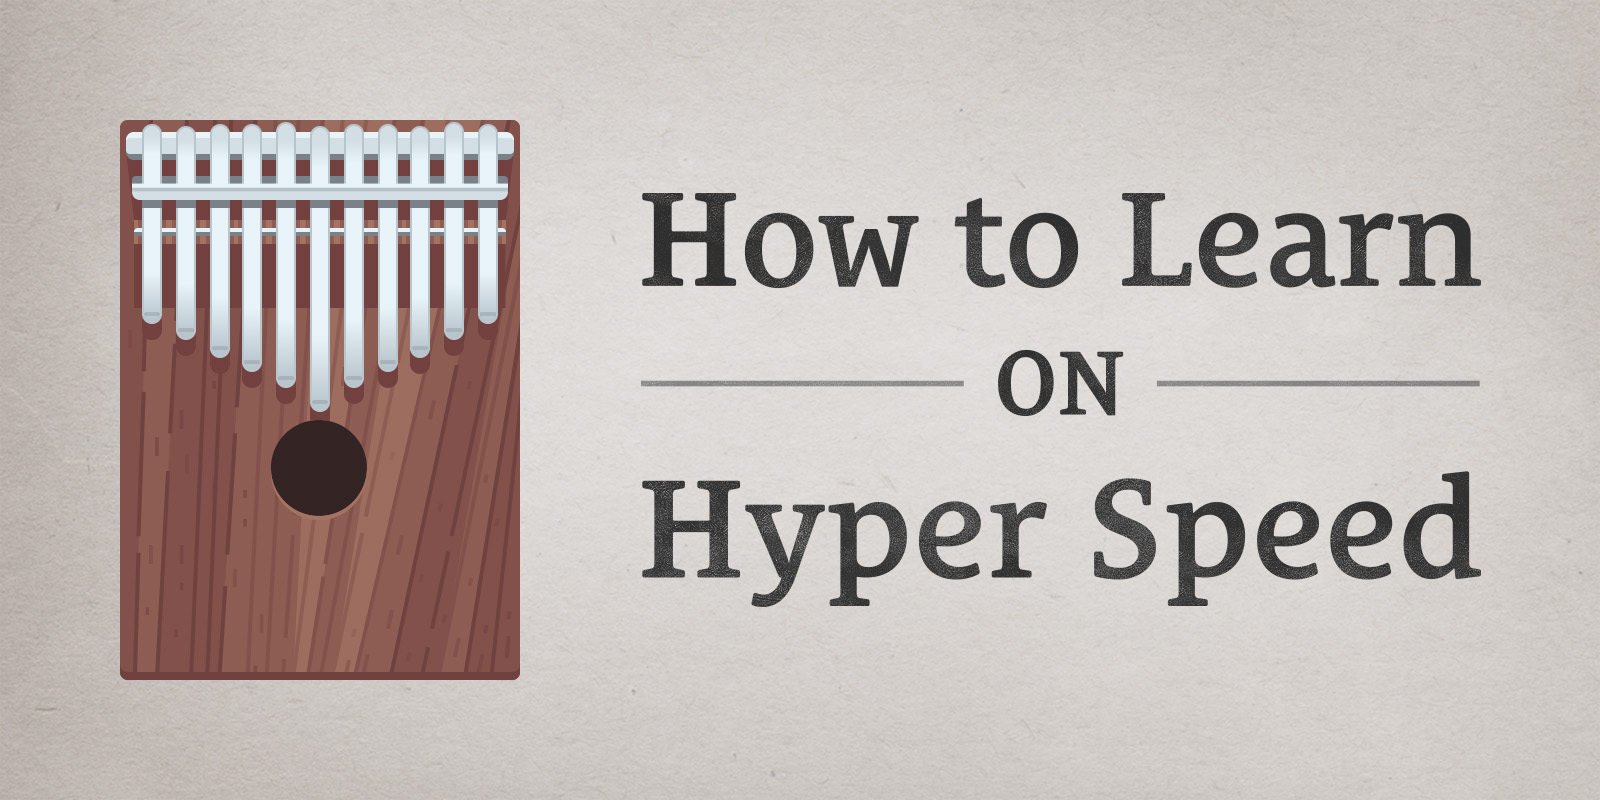 how-to-learn-on-hyper-speed